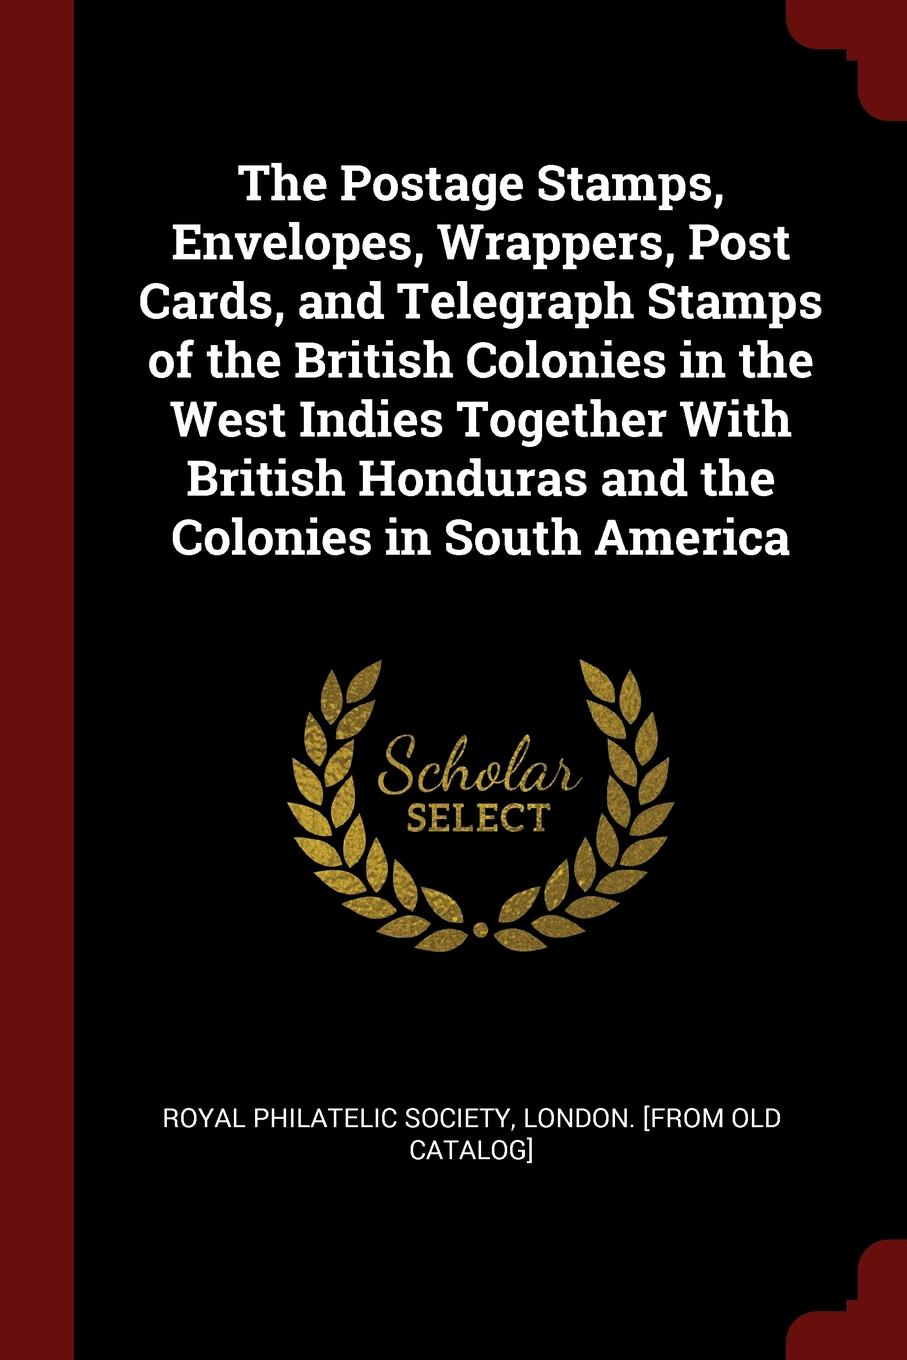 The Postage Stamps, Envelopes, Wrappers, Post Cards, and Telegraph Stamps of the British Colonies in the West Indies Together With British Honduras and the Colonies in South America 100 pcs lot postage stamps good condition used with post mark from all the world stamps brand